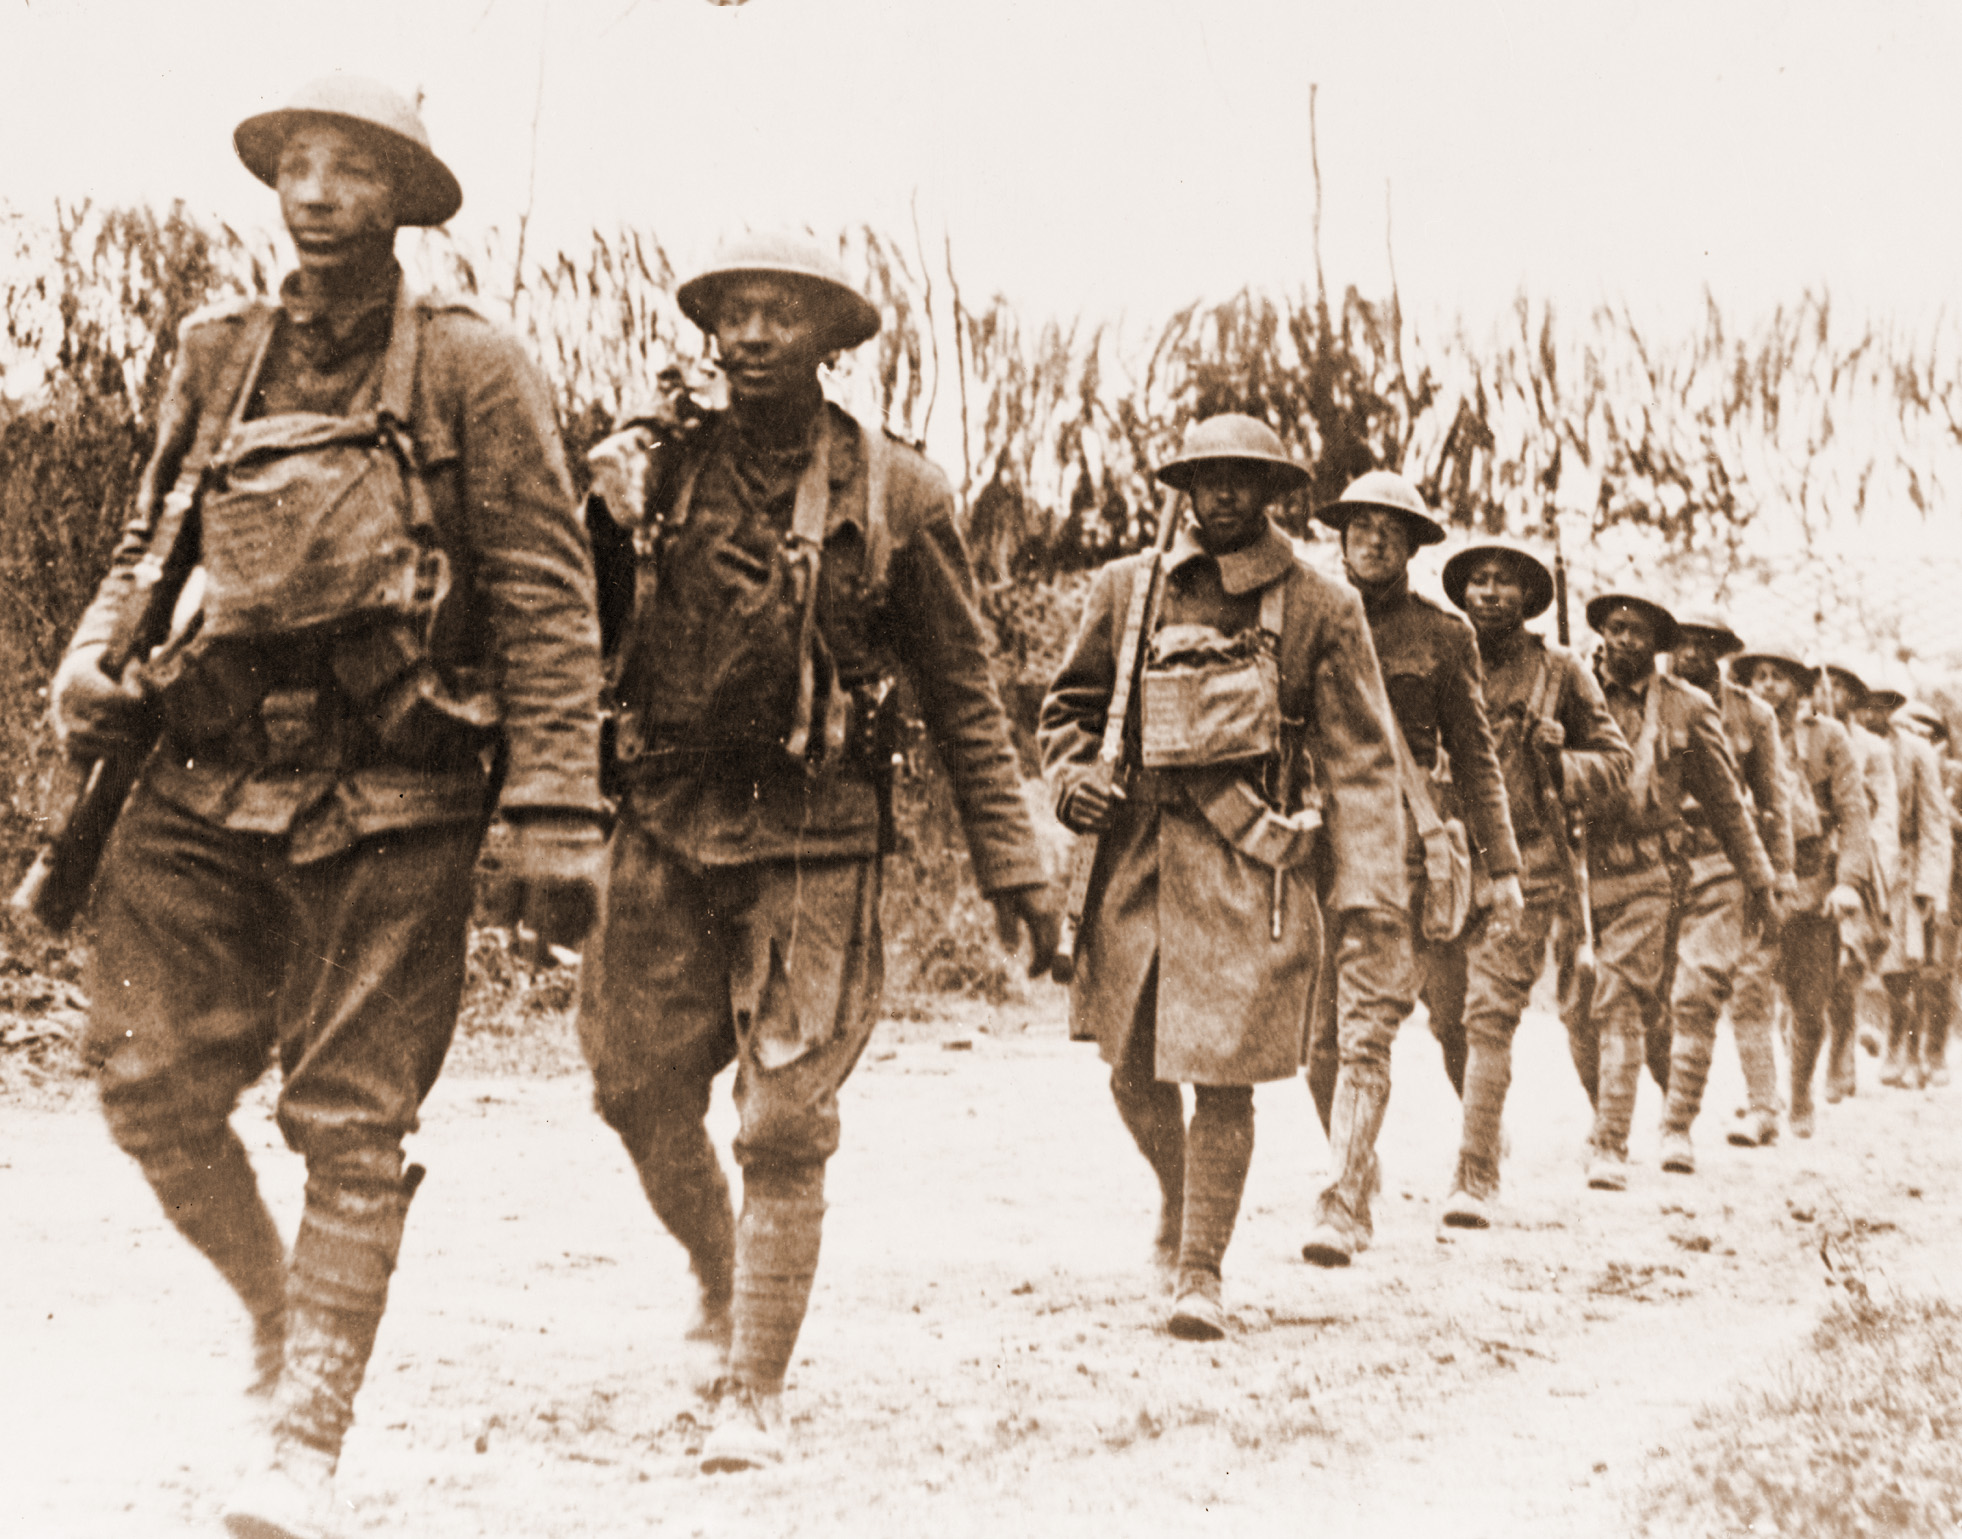 the united states and world war i The economy was mired in recession in 1914 and war quickly opened up new markets for american manufacturers in the end, world war i set off a 44-month period of growth for the united states and solidified its power in the world economy.